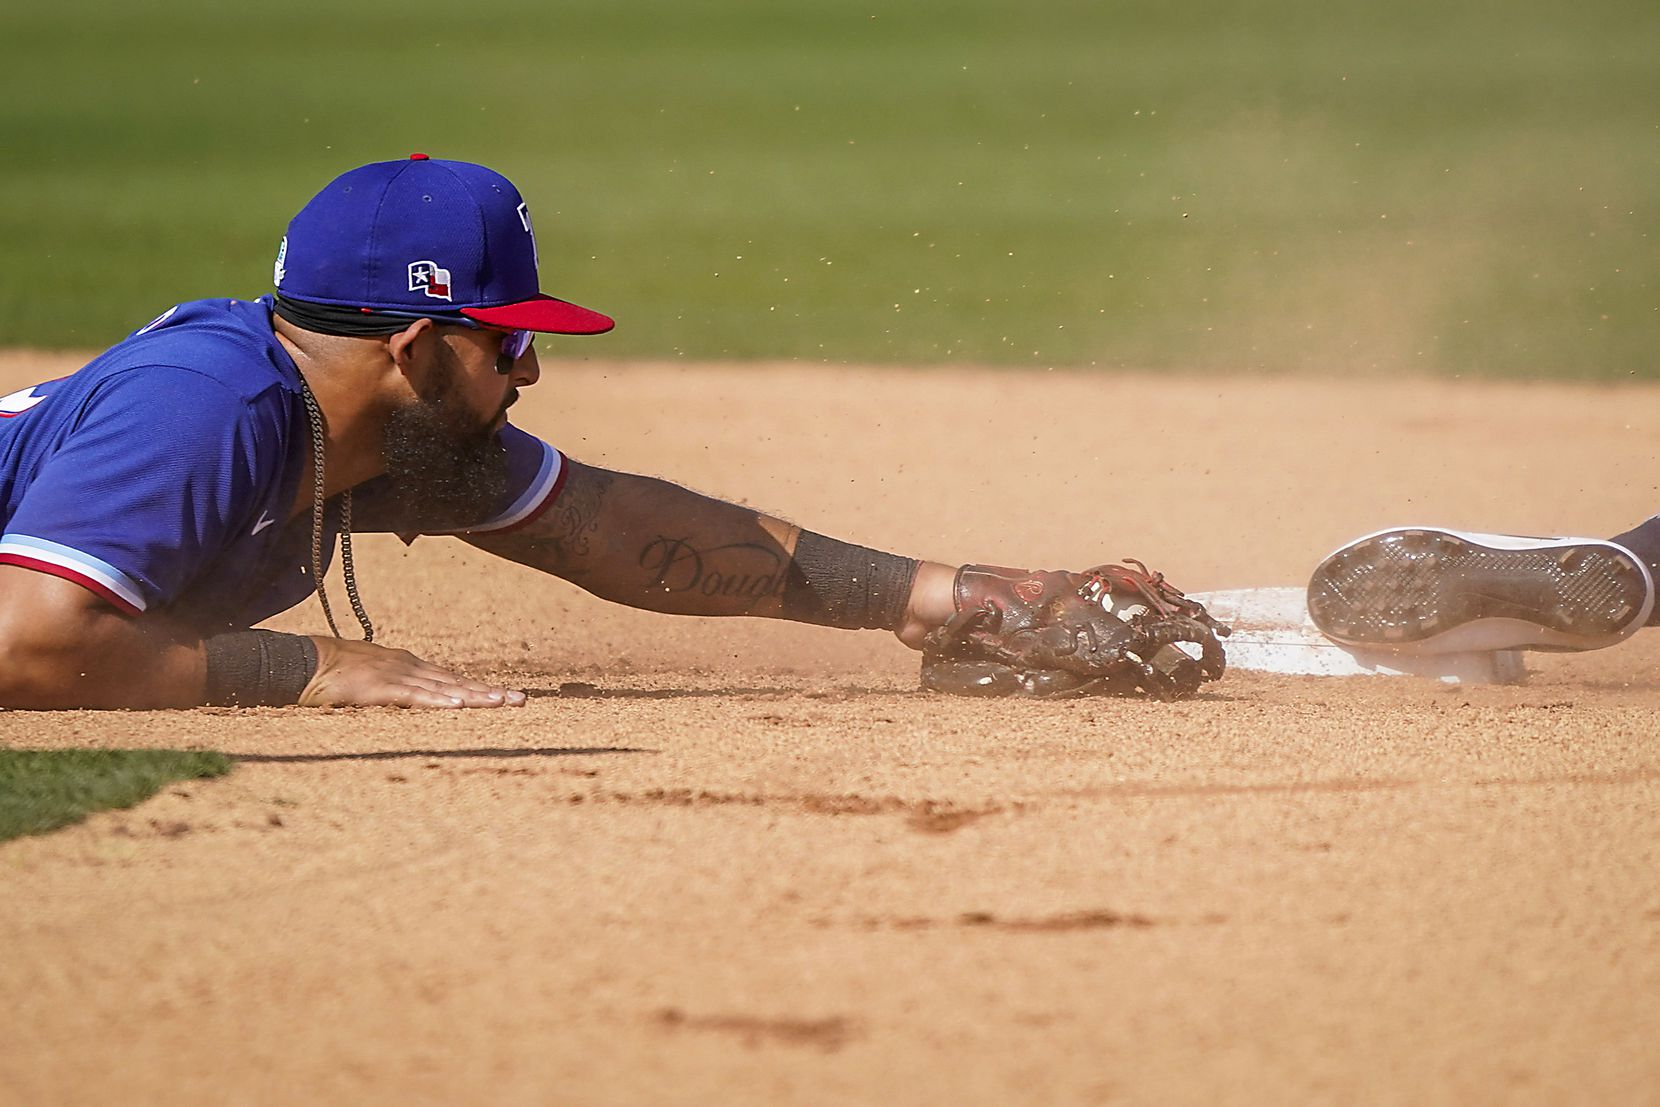 The Rangers' Rougned Odor can't make a diving tag in time as Seattle's Jordan Cowan steals second during a spring game in Peoria, Ariz.